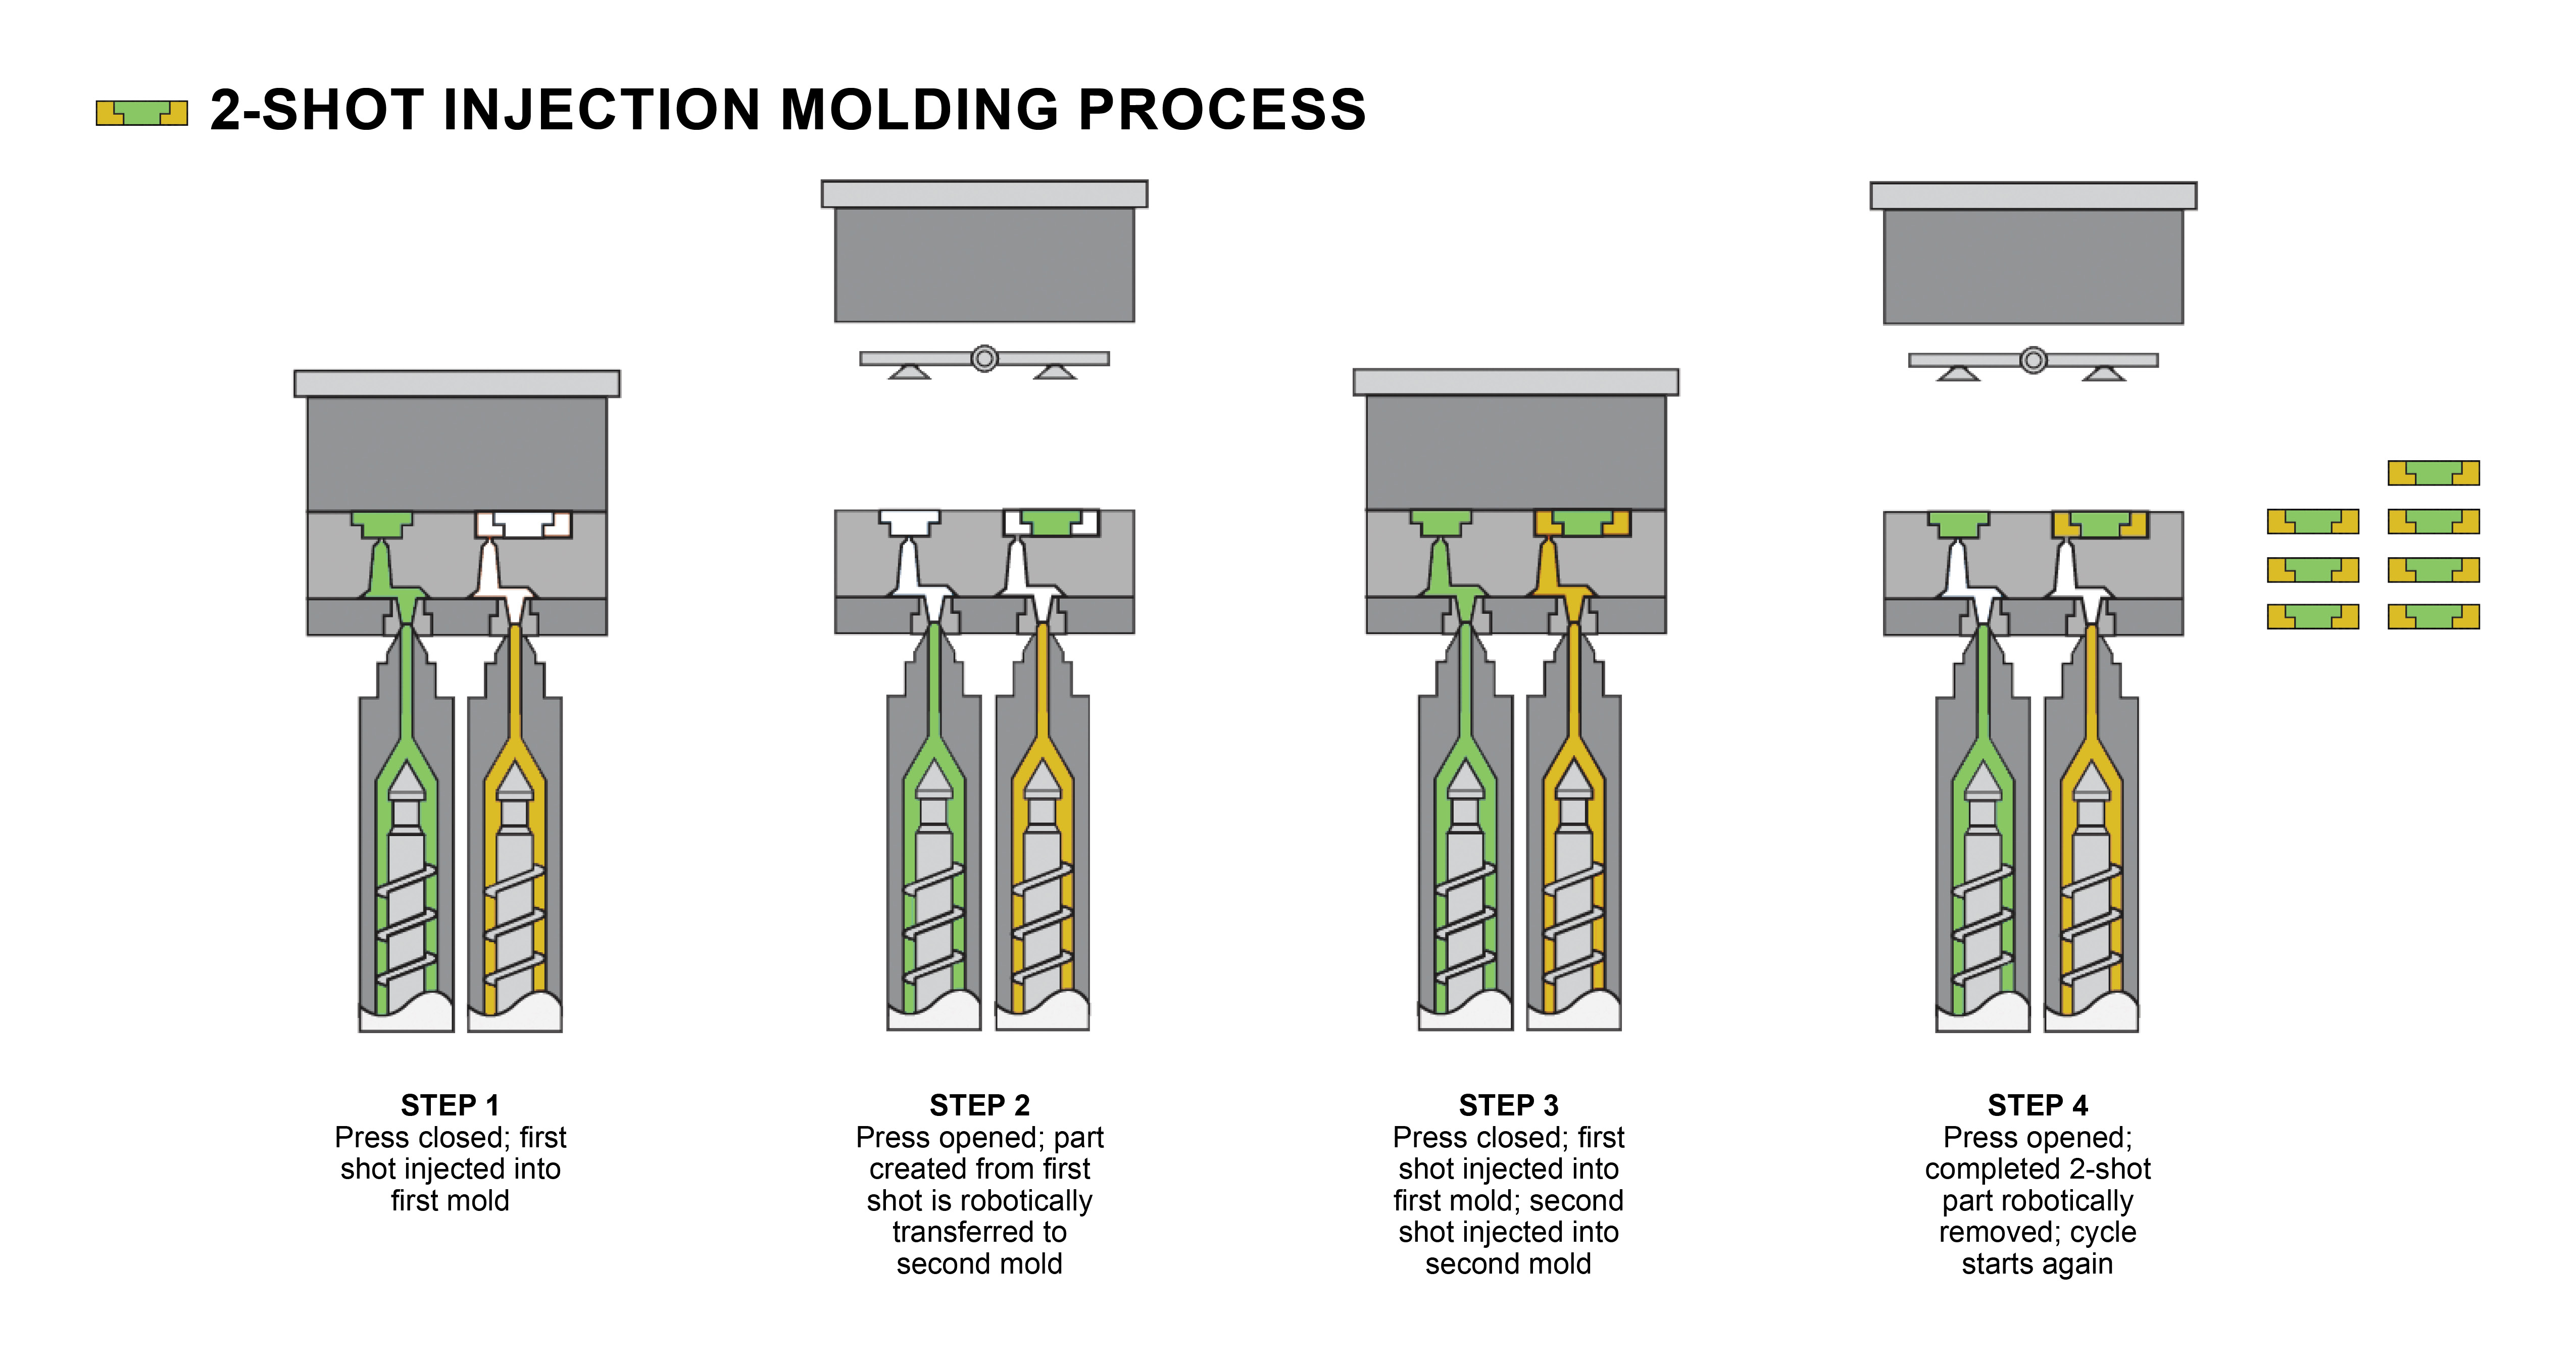 A graphic illustrating how the two-shot injection molding process works.